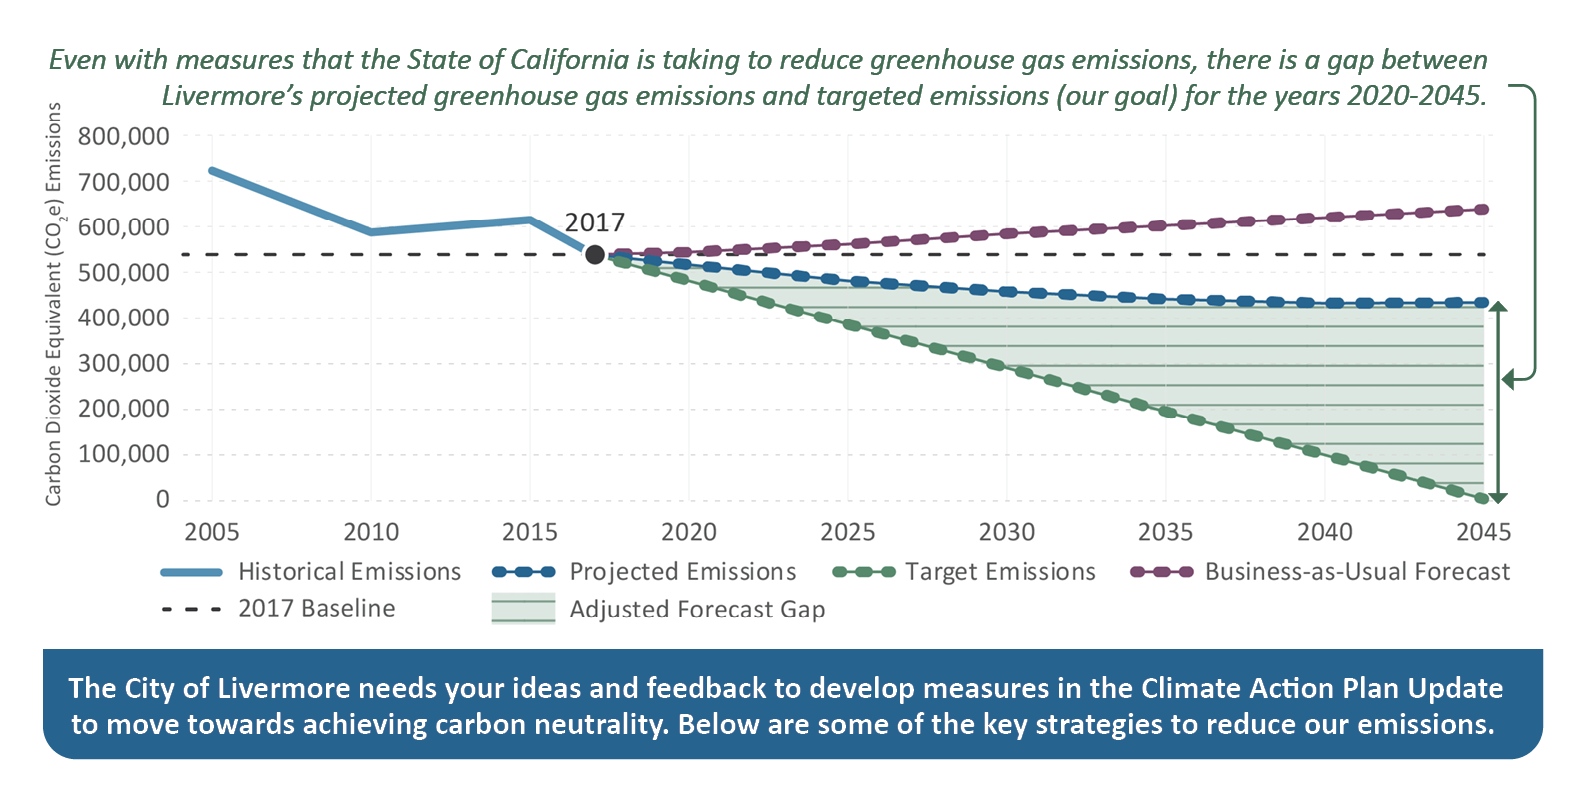 Graph displaying GHG emissions for Livermore